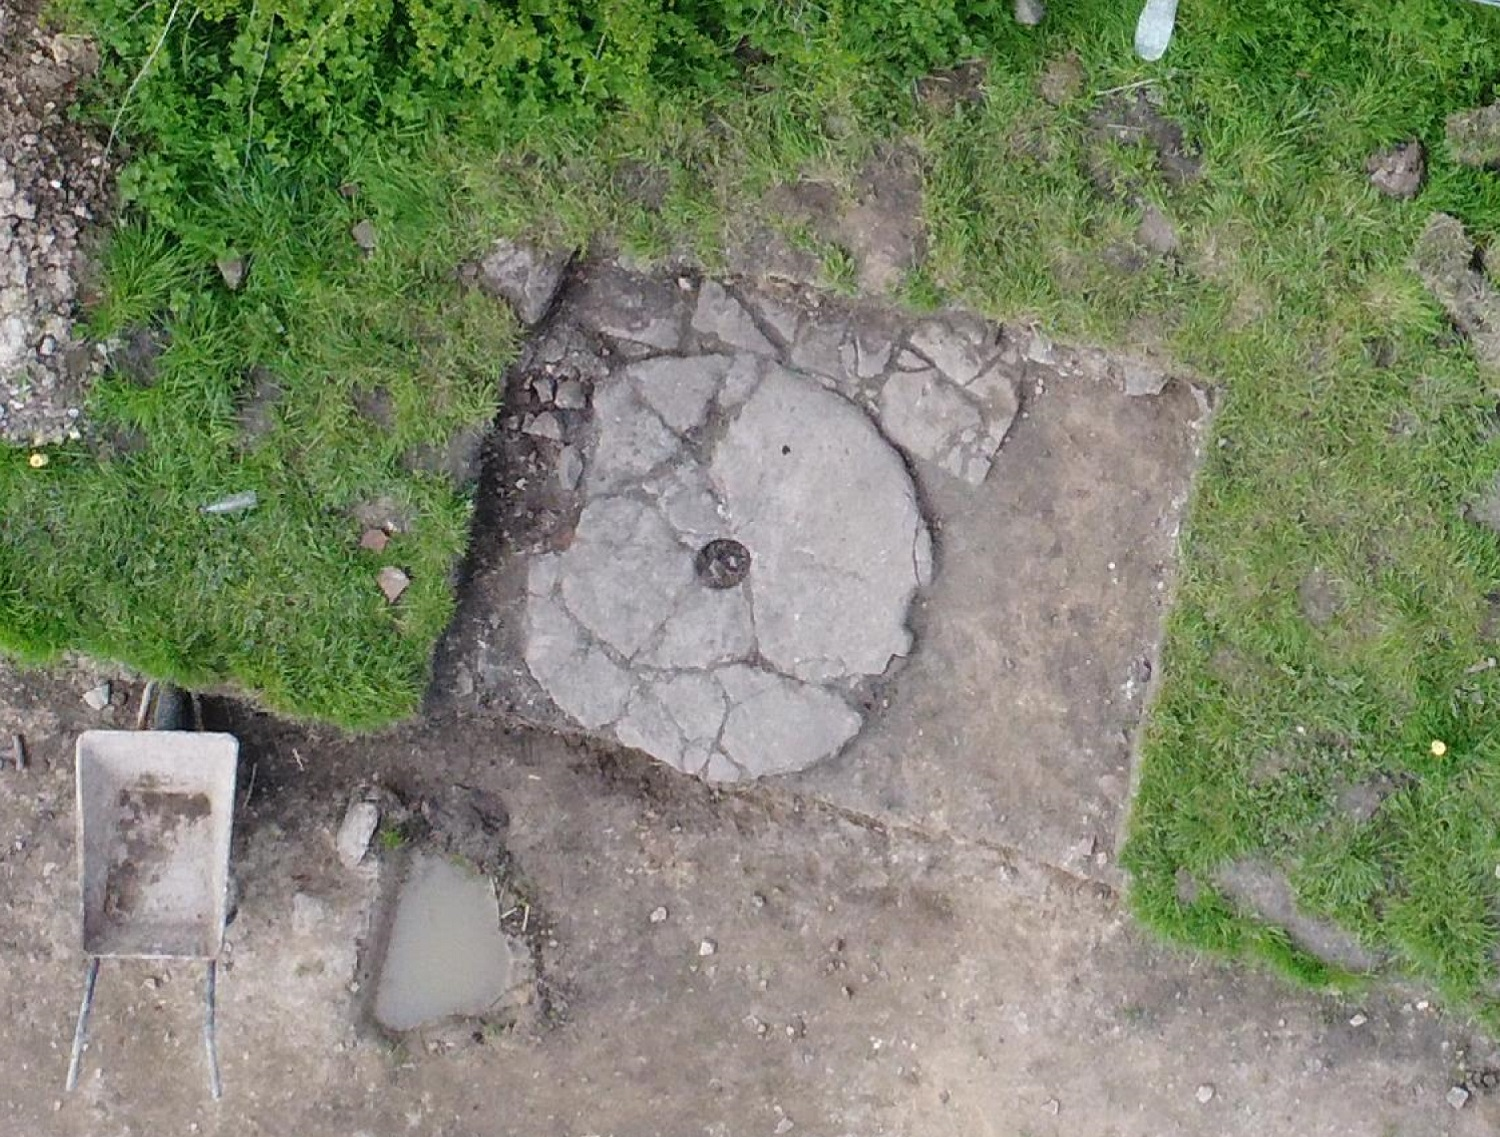 An overhead view of a circular millstone laid flat